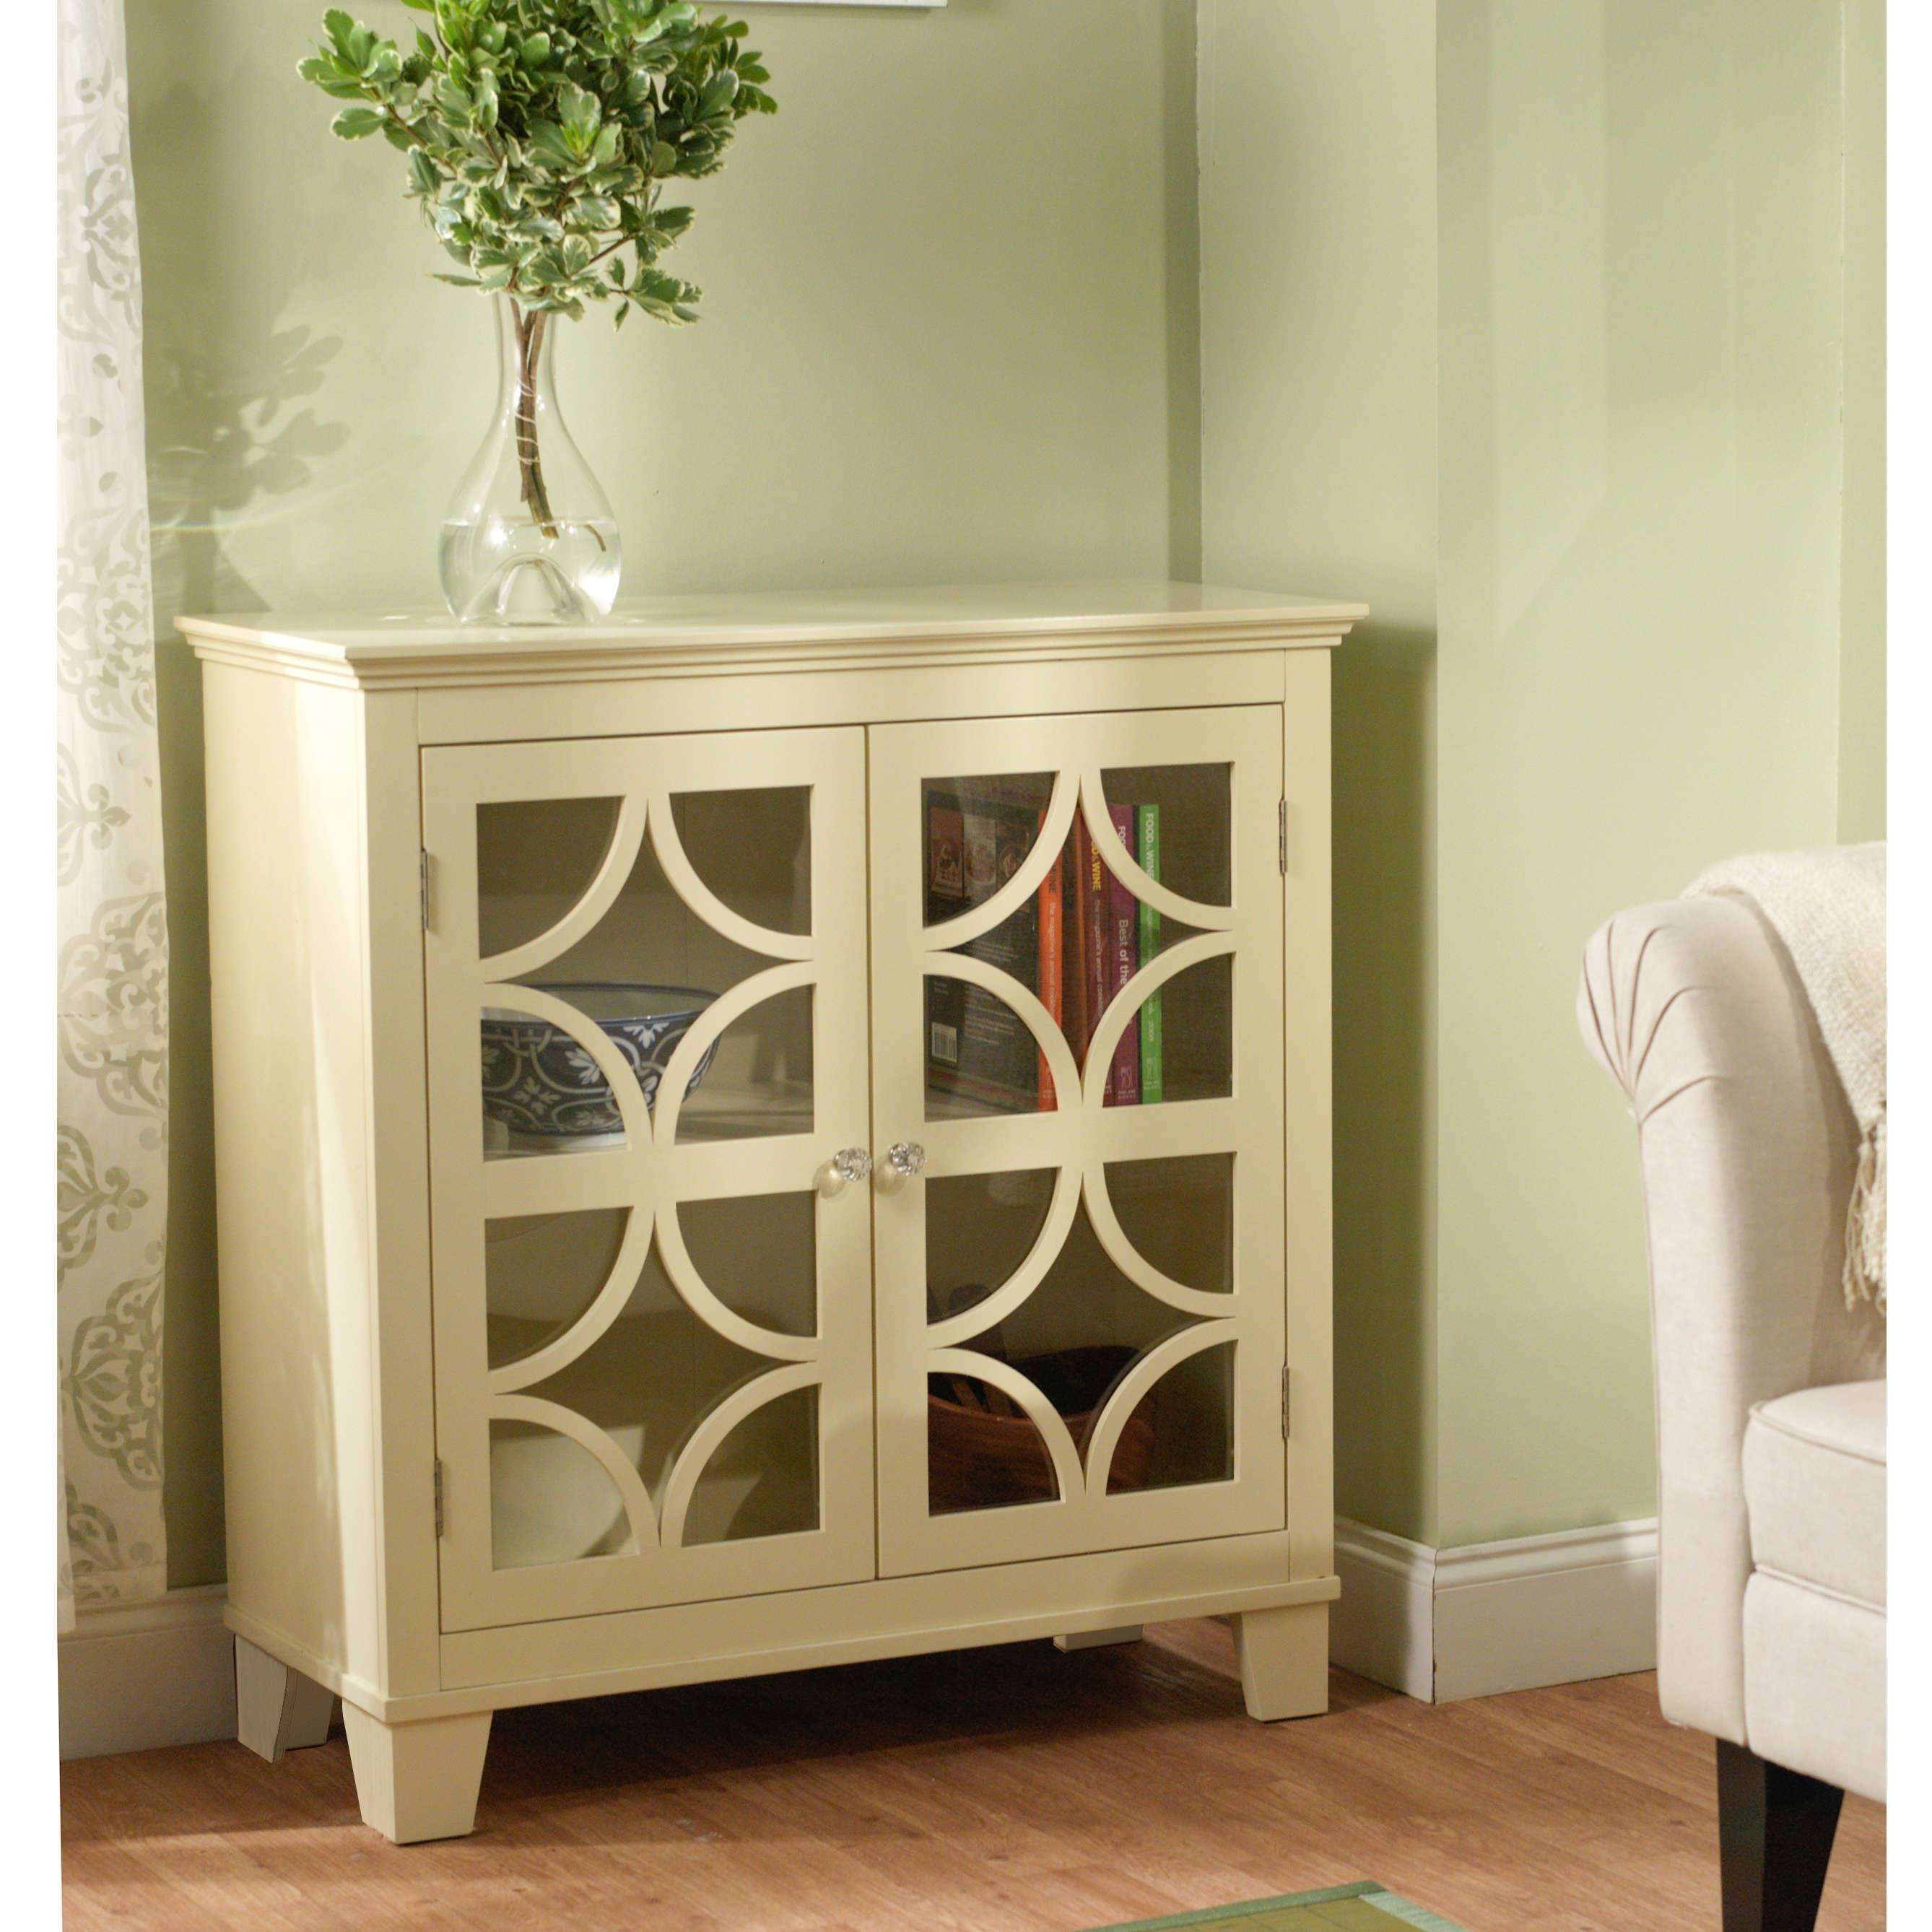 Furniture: White Sideboard Buffet With Two Drawers And Glass Door with regard to Sideboards With Glass Doors and Drawers (Image 6 of 15)